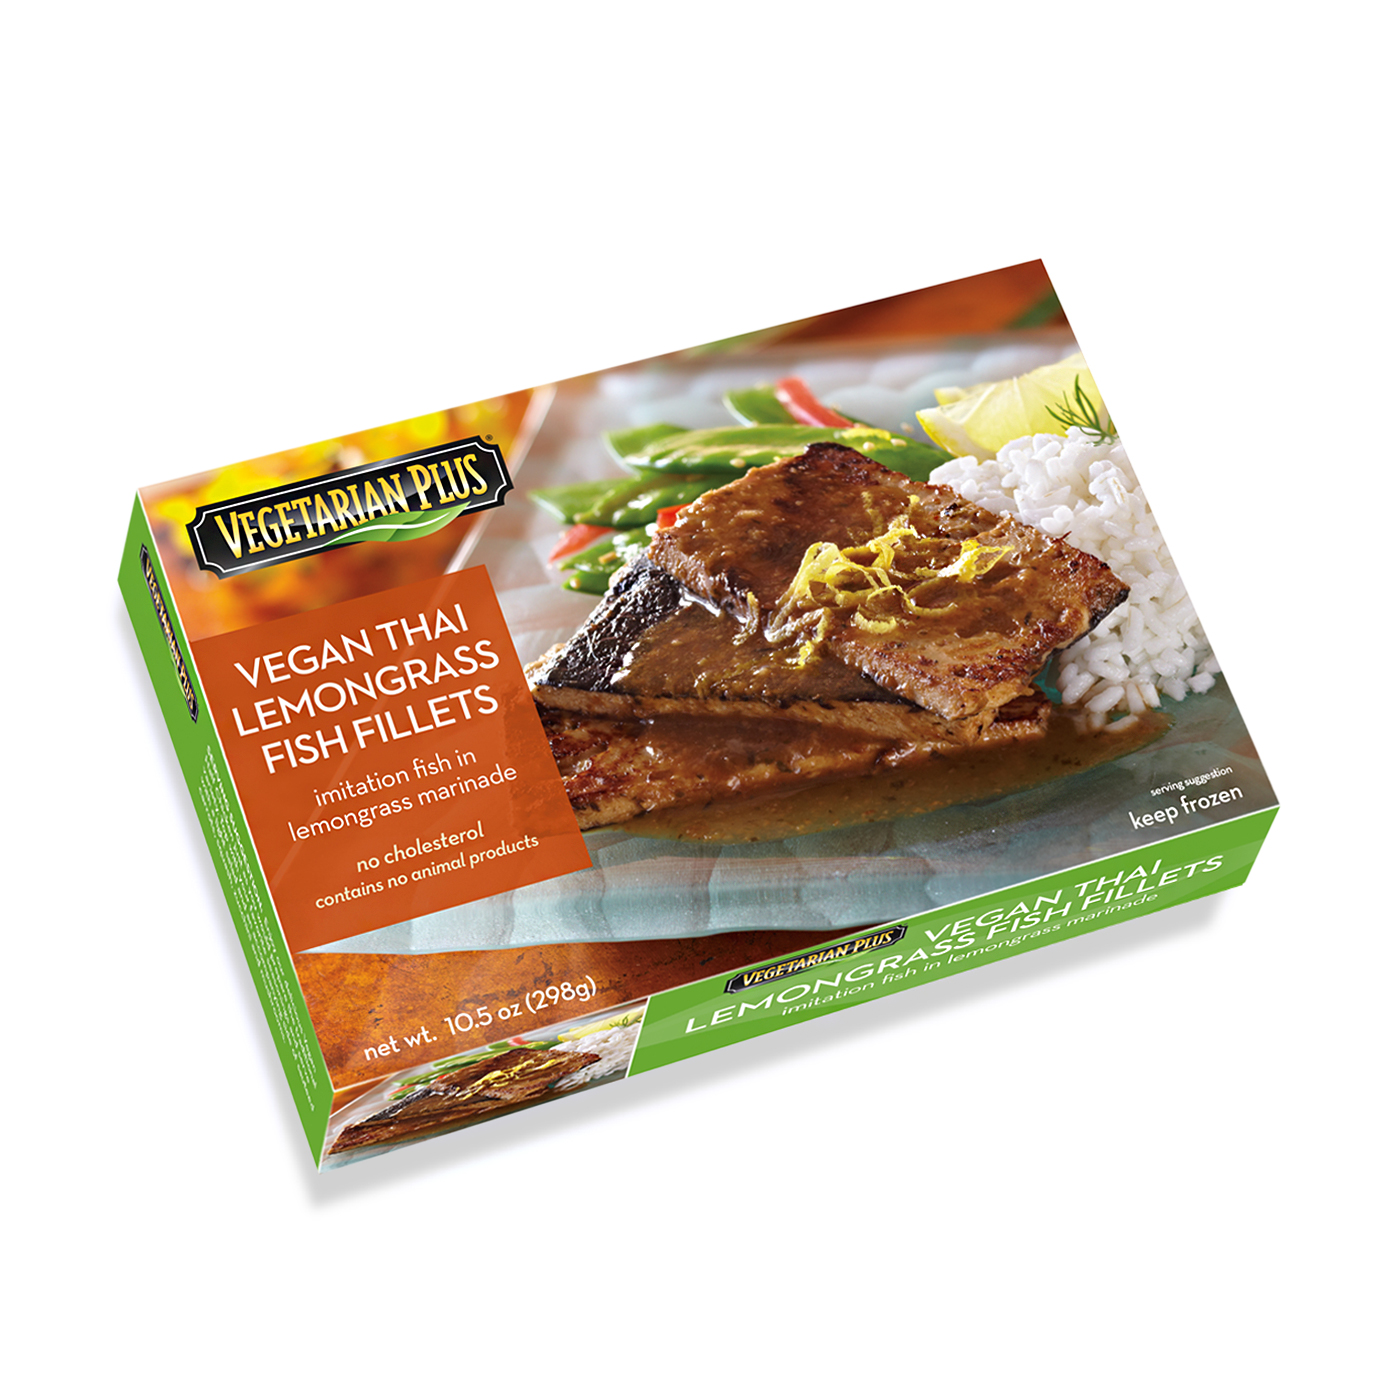 Vegan Thai Lemongrass Fish Fillets Box